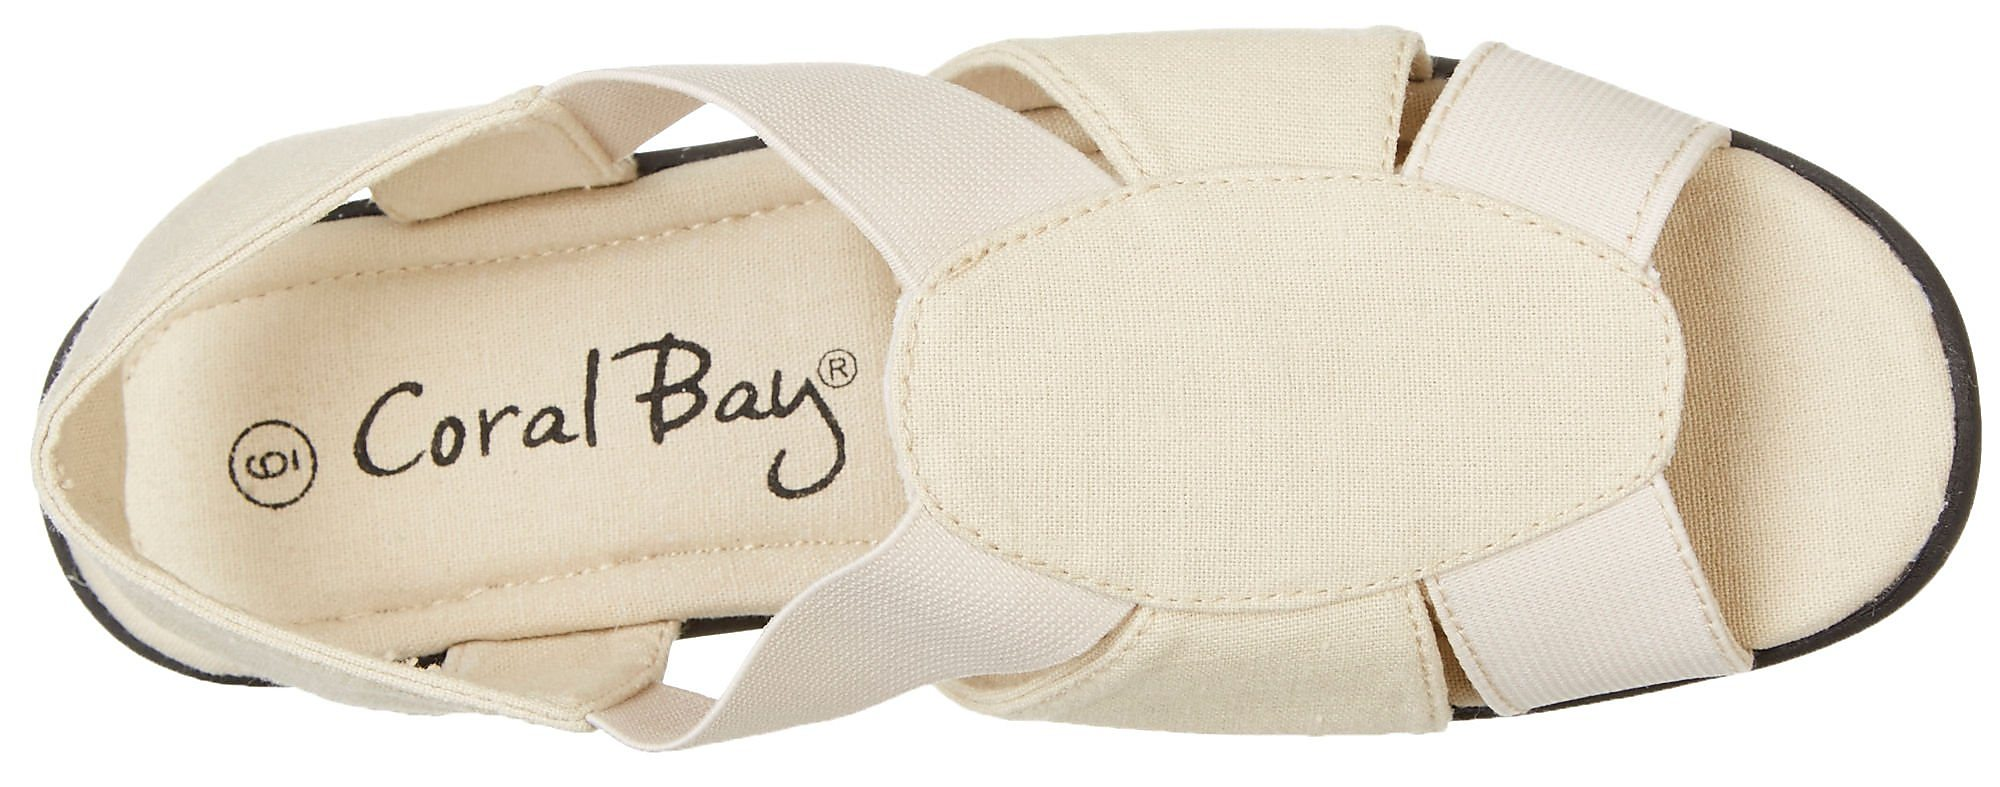 277bd84a1 Coral Bay Womens Maggie Memory Foam Sandals with Slip Resistant ...